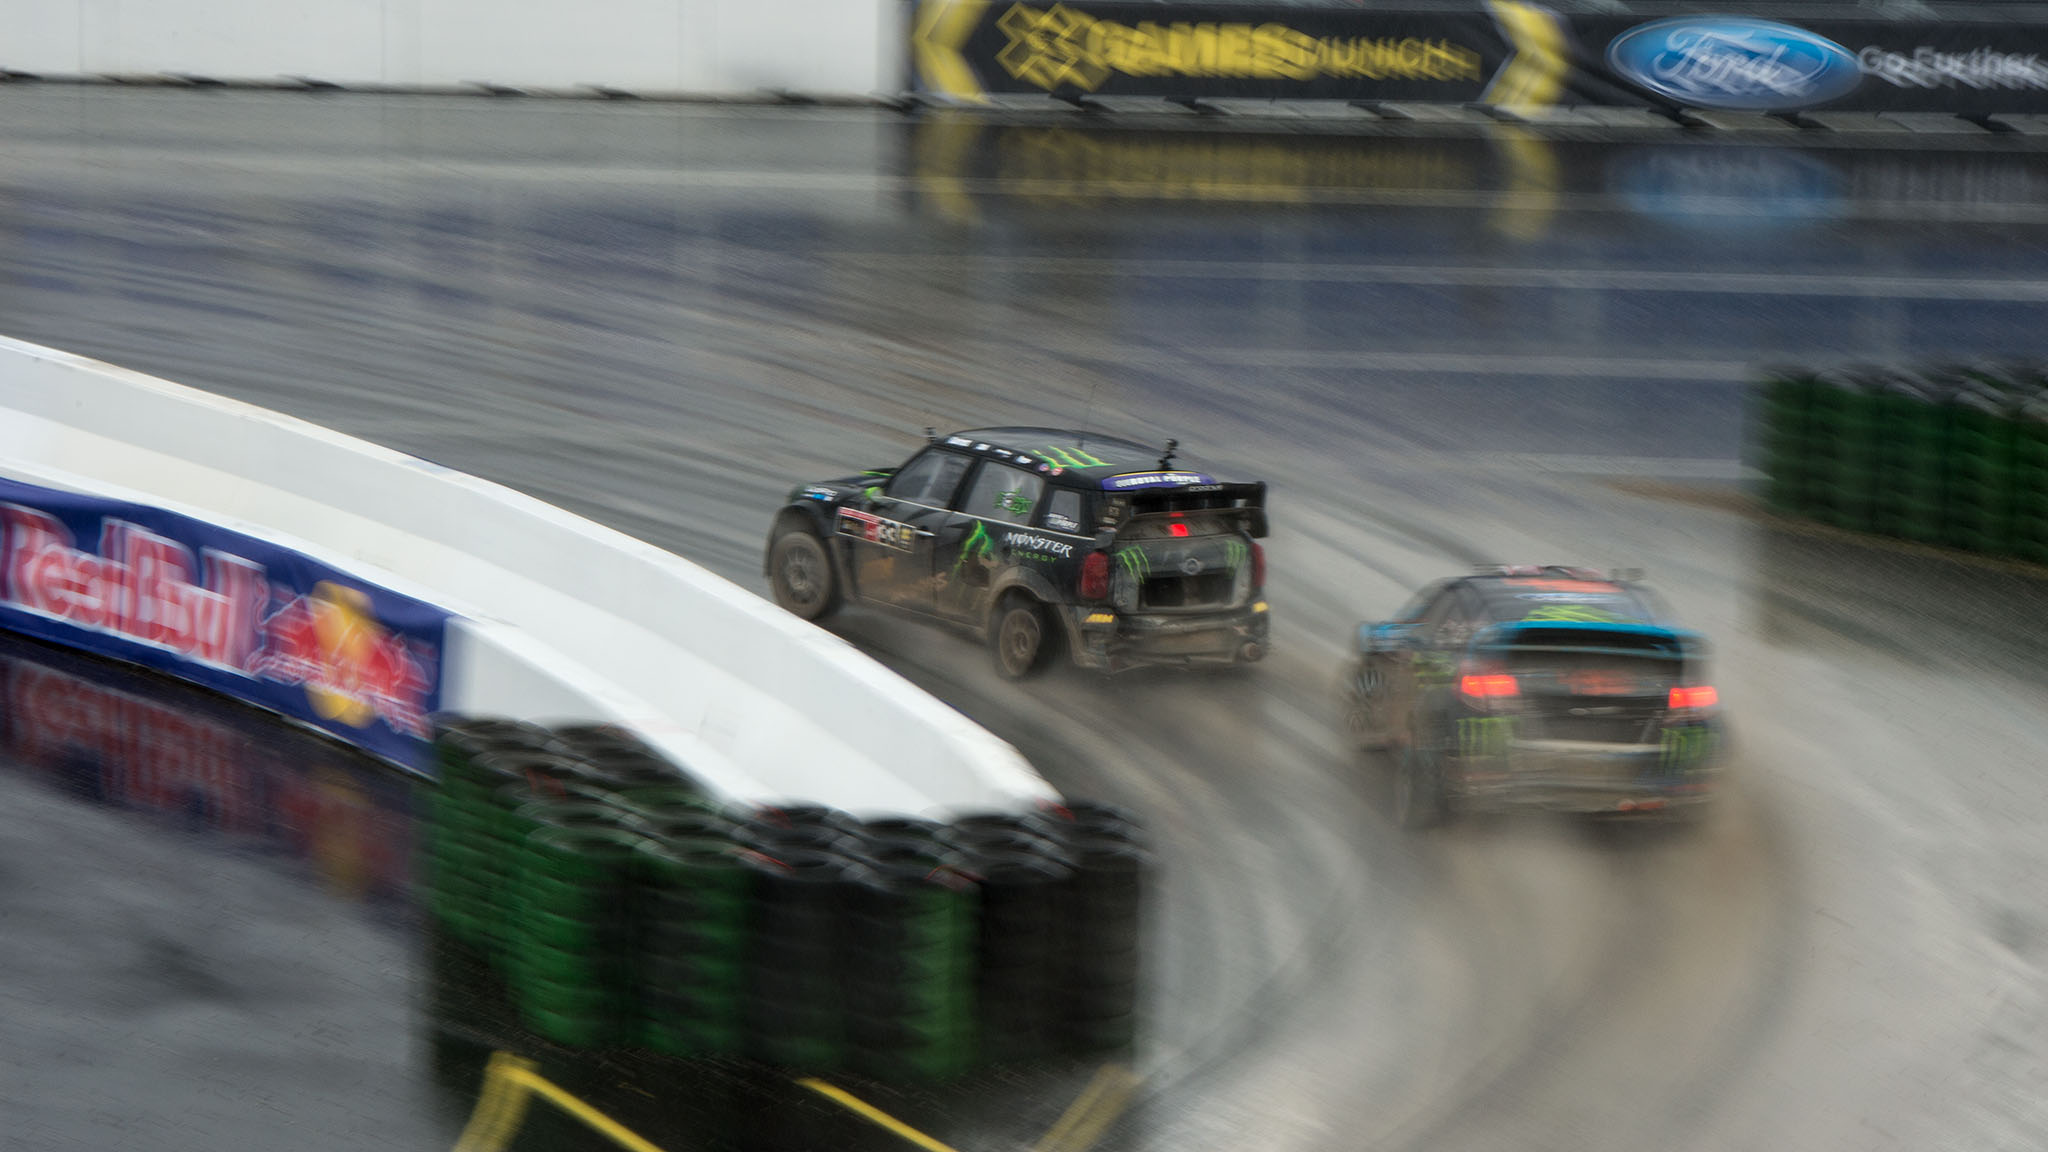 Liam Doran won a wet and wild RallyCross race at X Games Munich.